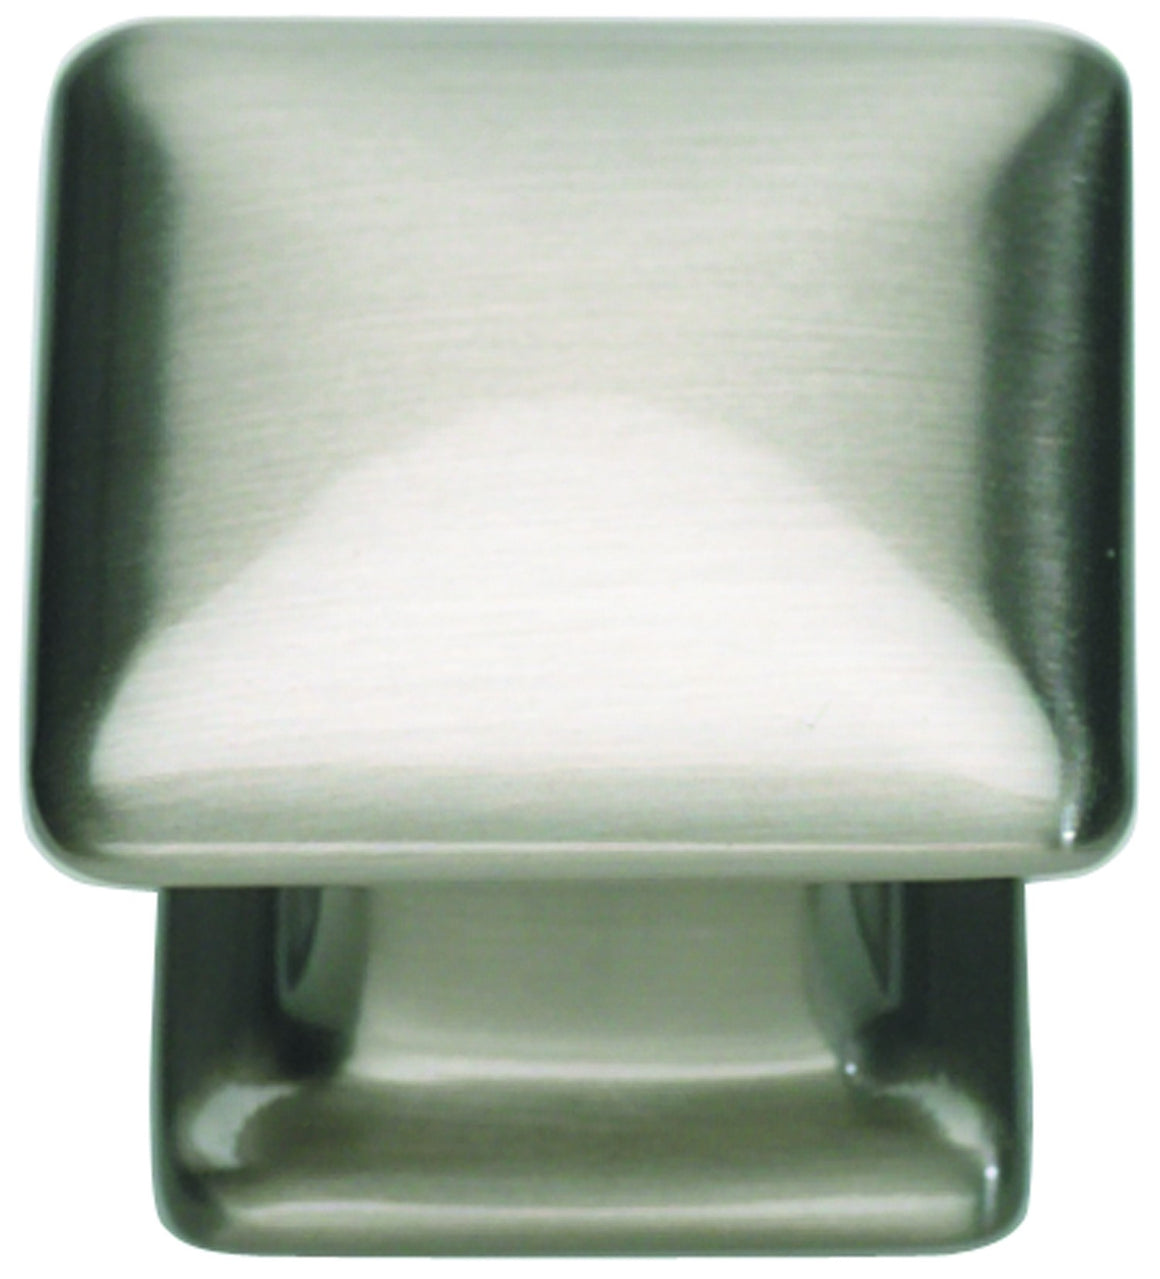 Alcott Square Knob 1 1/4 InchCabinet Hardware - Graham's Lighting Memphis, TN